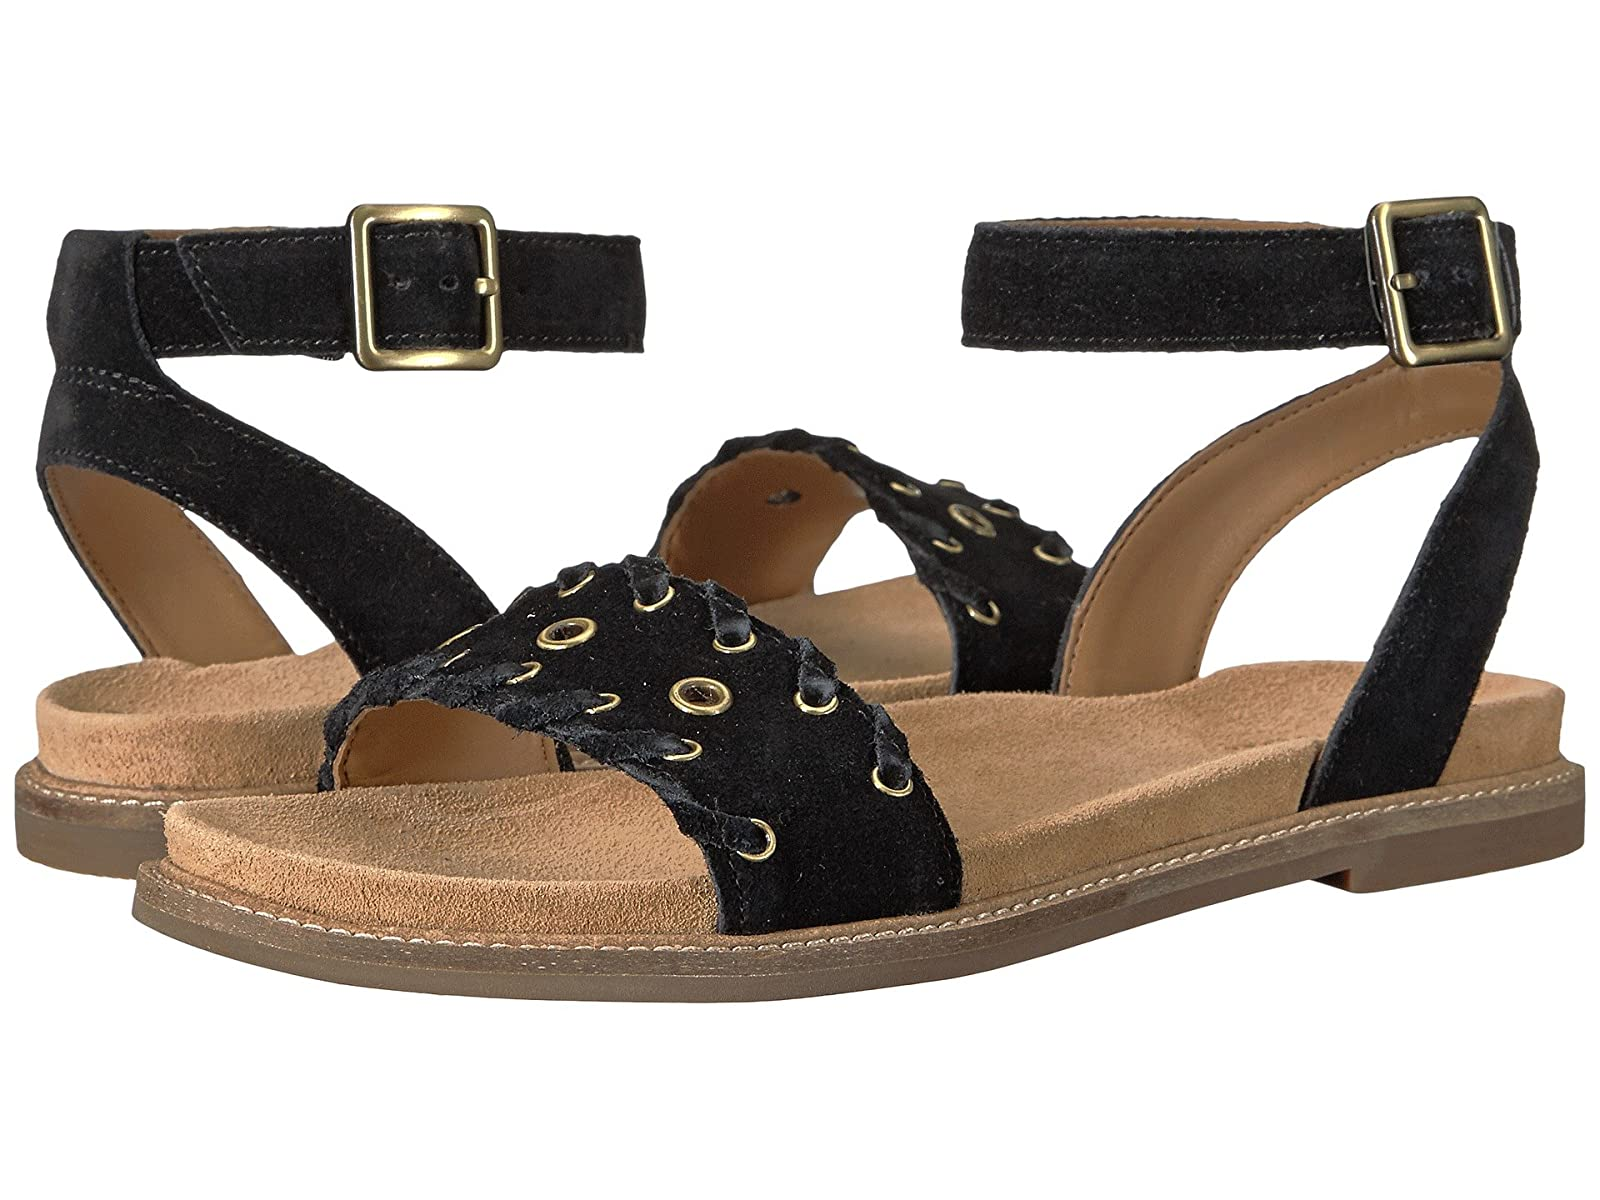 Clarks Corsio AmeliaCheap and distinctive eye-catching shoes